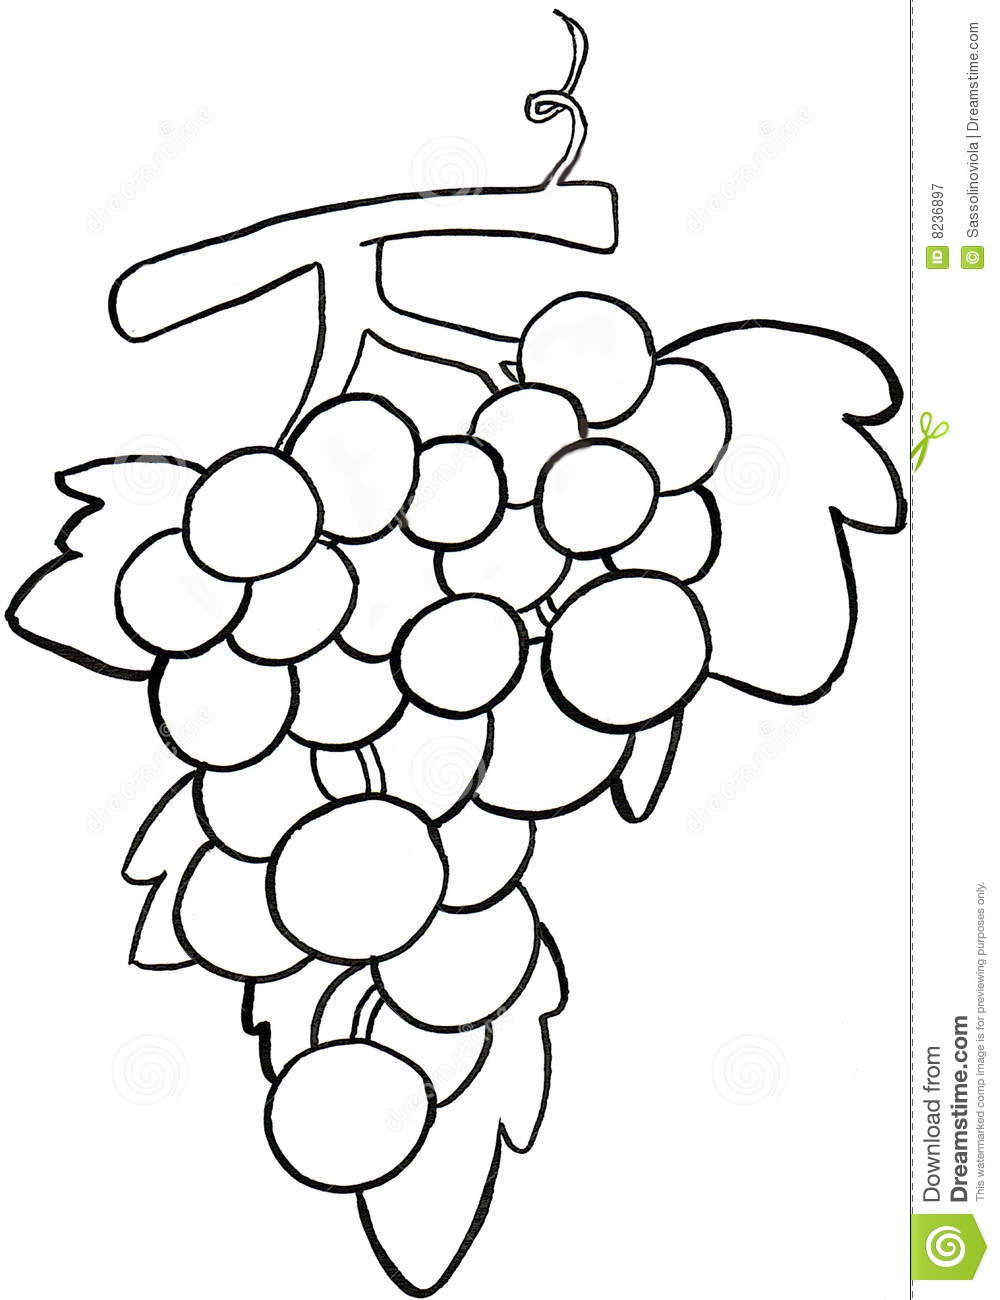 Black And White Grapes Clipart | Free download best Black And White ...